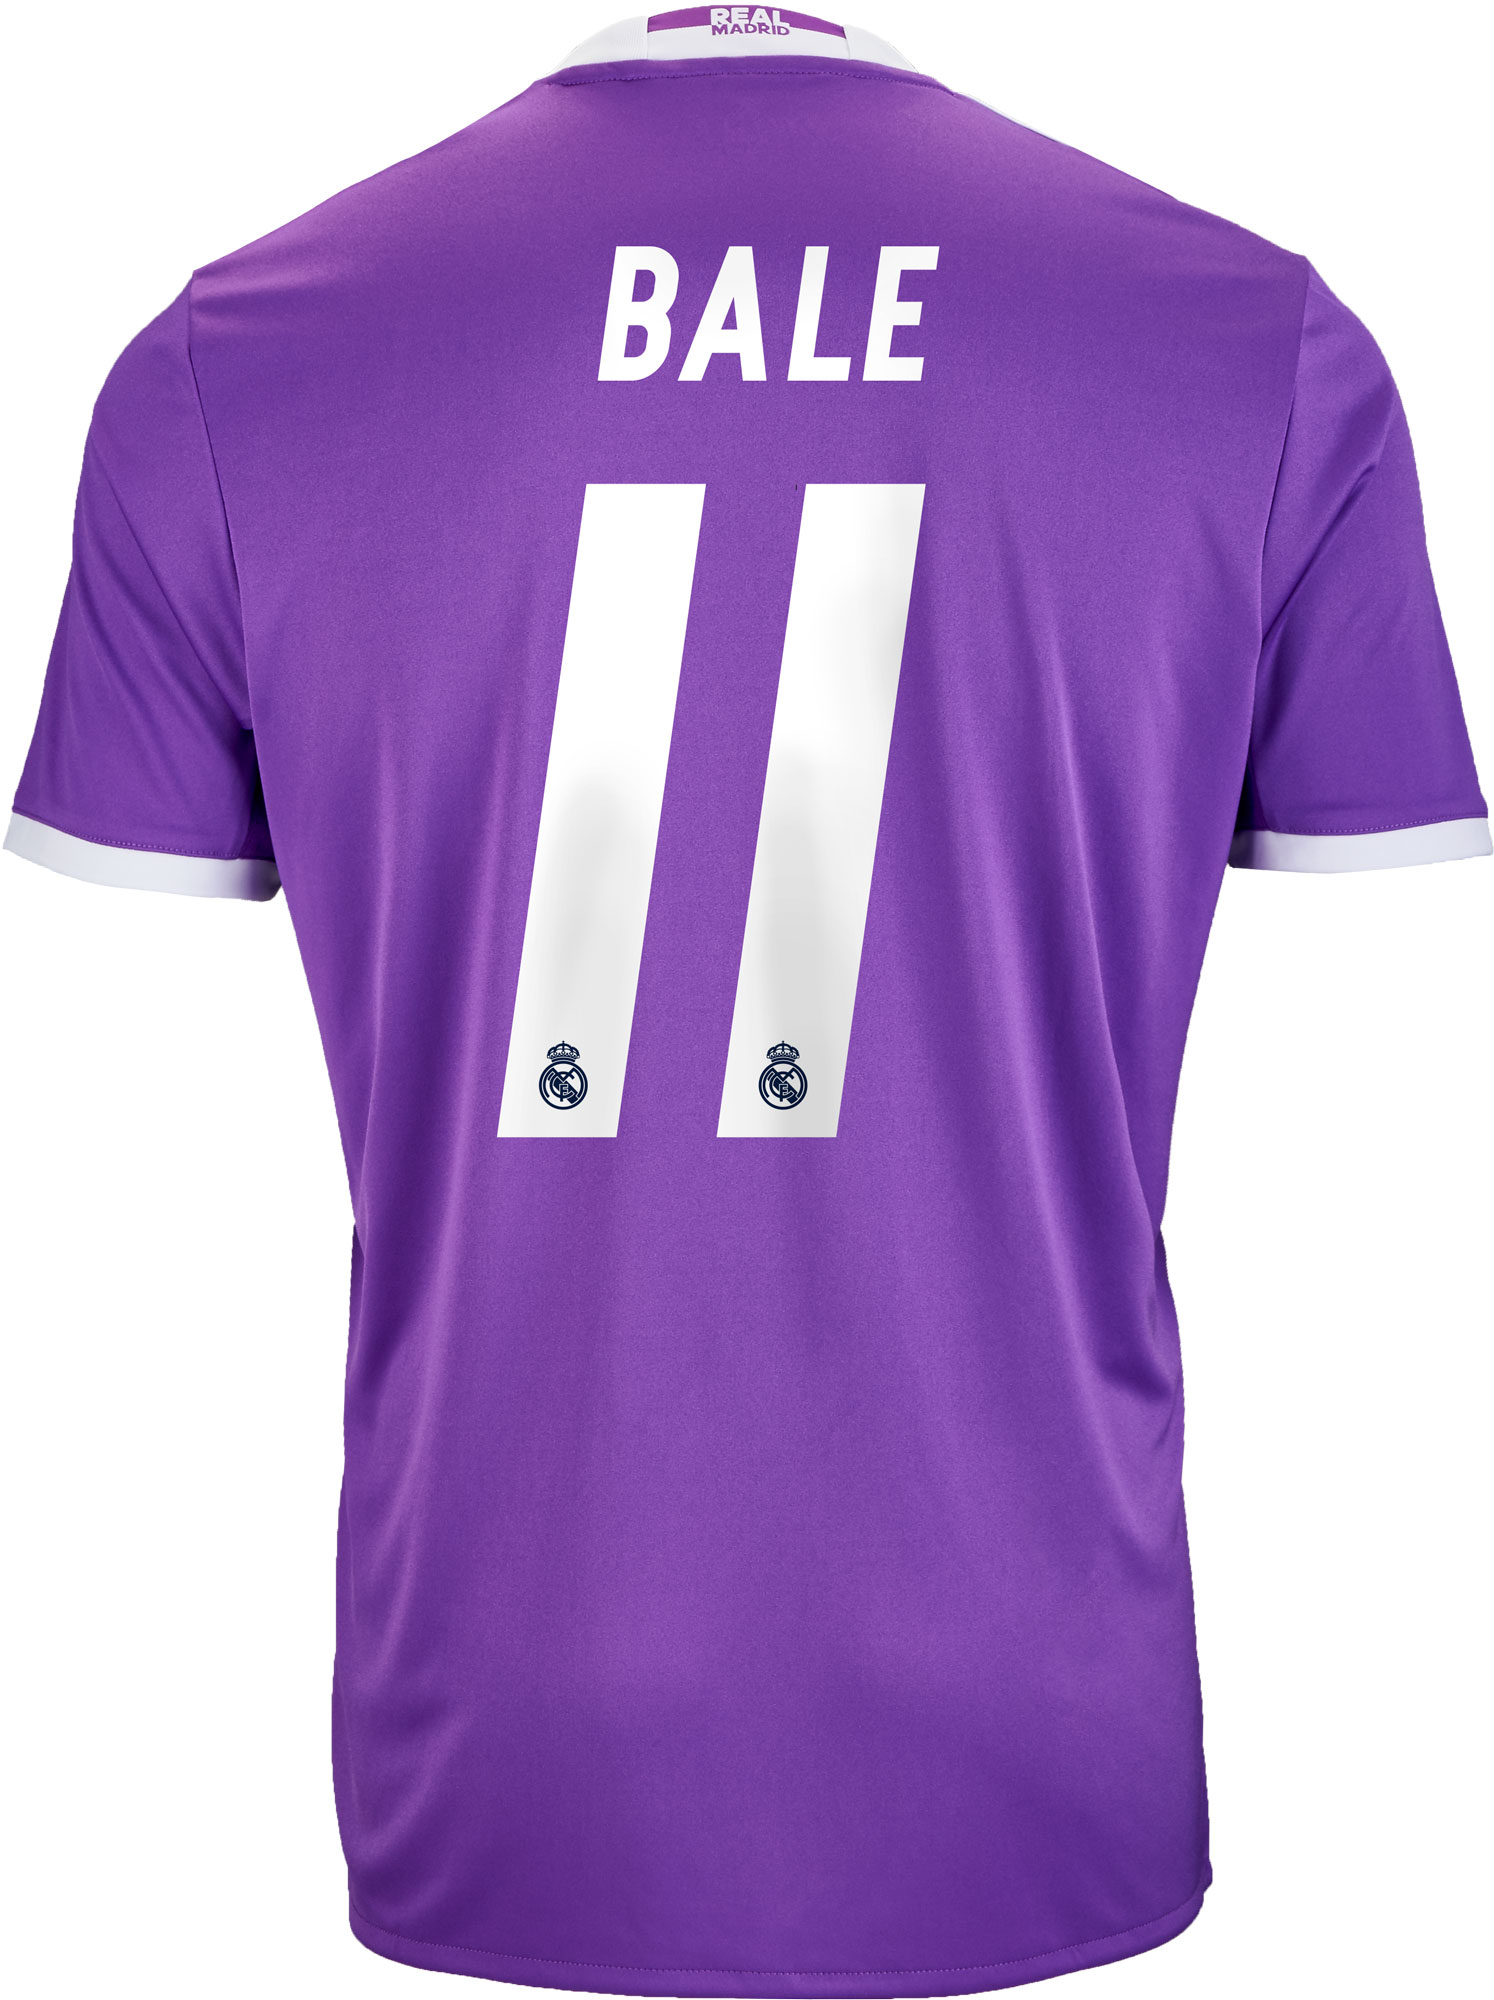 5d945b155 ... adidas Gareth Bale Real Madrid Jersey - 2016 Real Madrid Jer ...